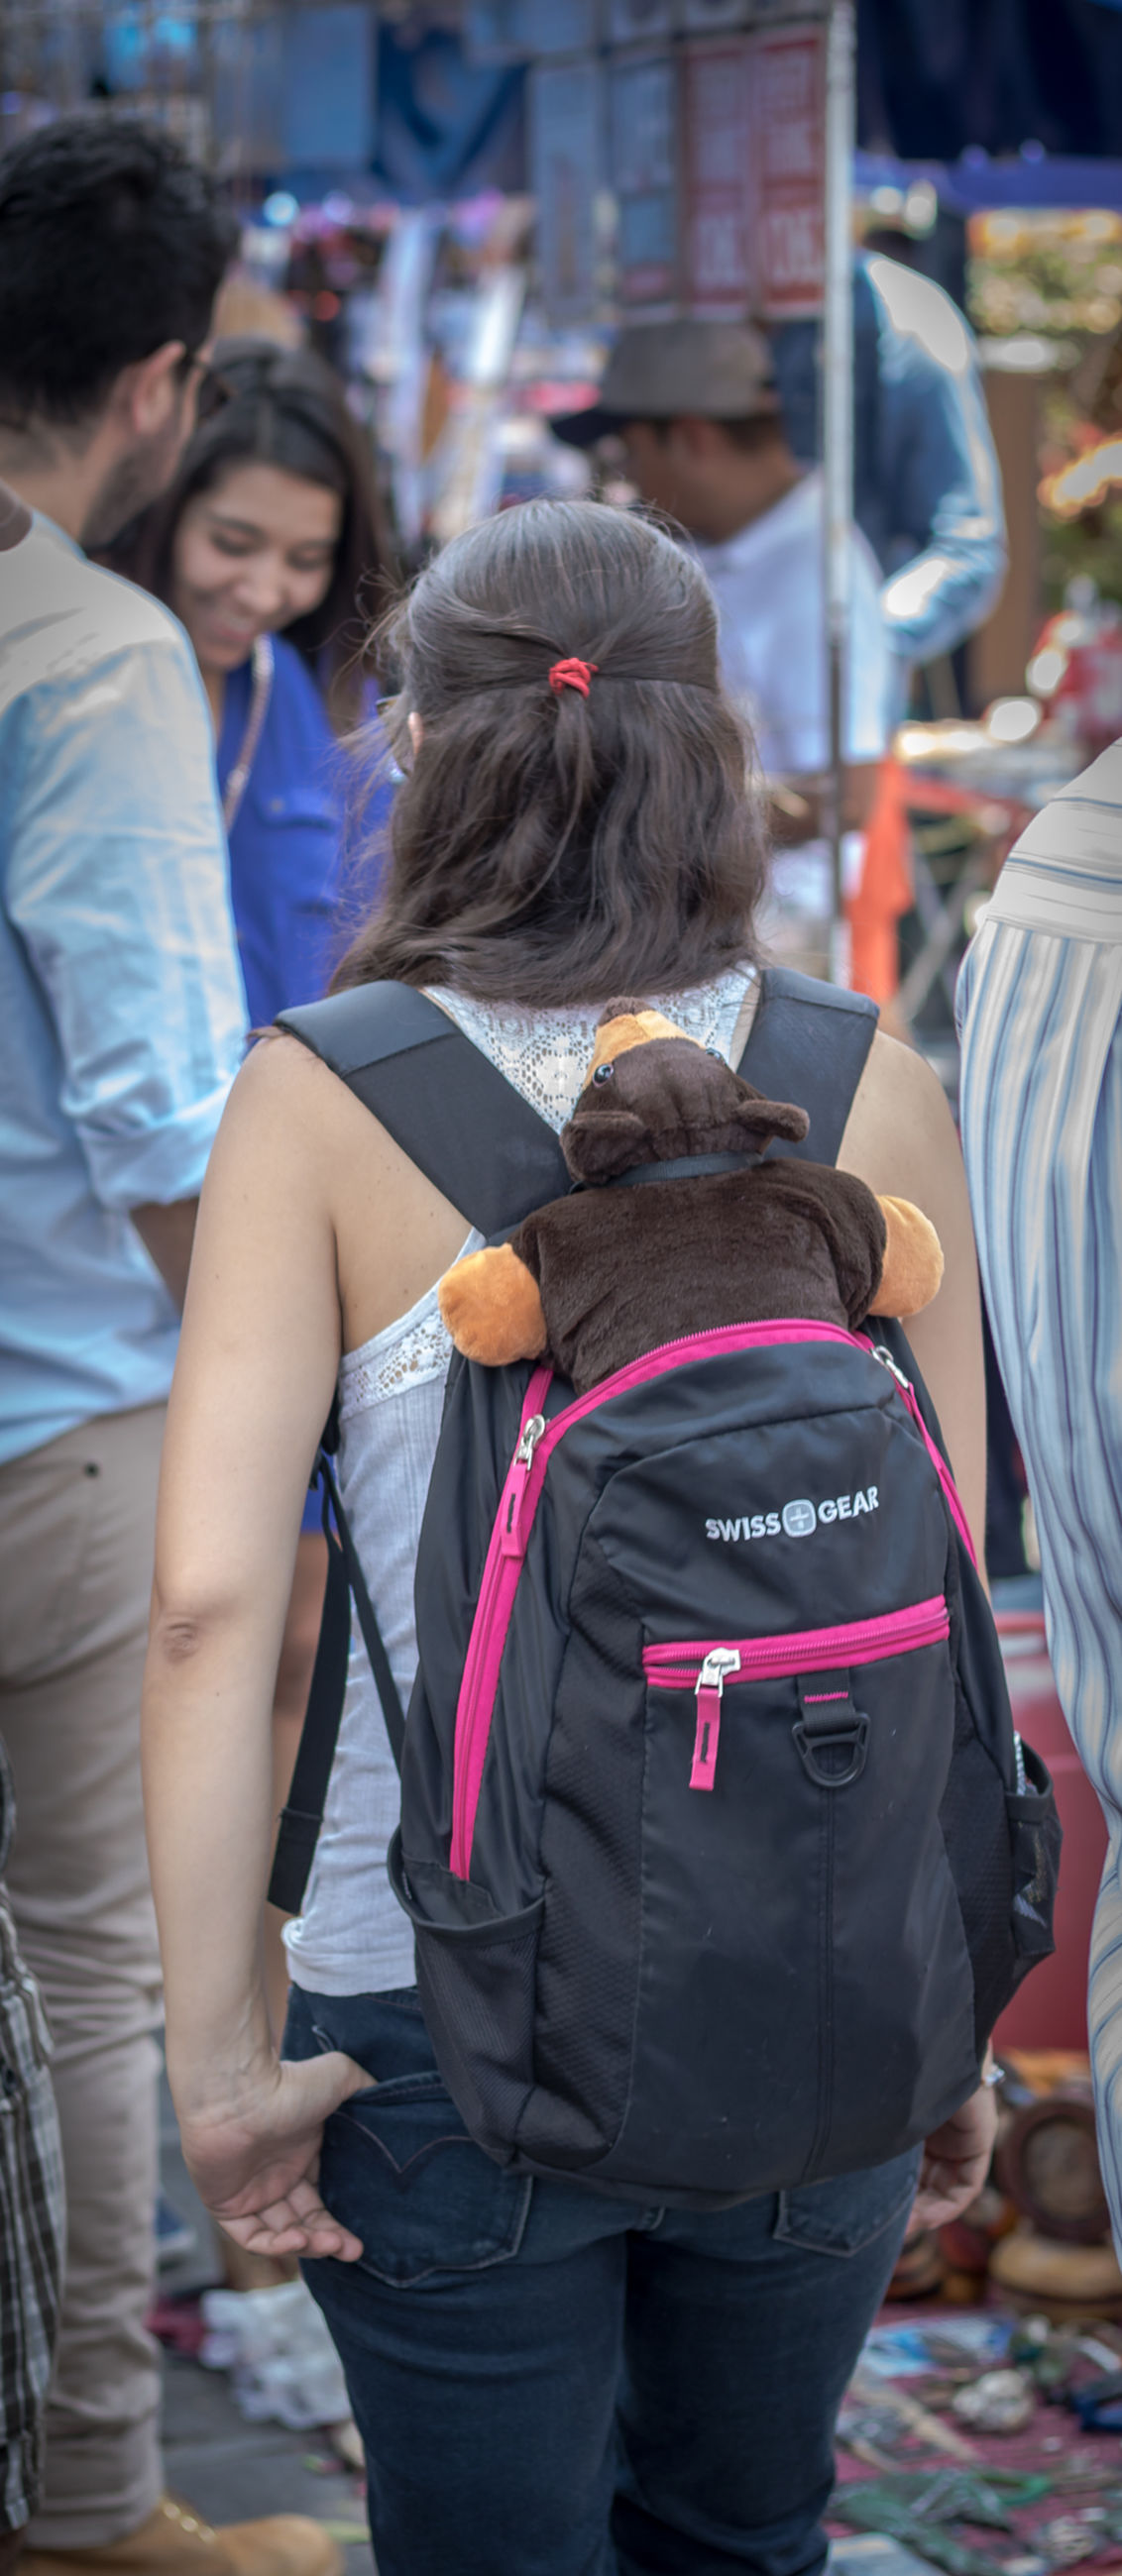 rear view, real people, backpack, leisure activity, lifestyles, two people, day, women, outdoors, togetherness, men, people